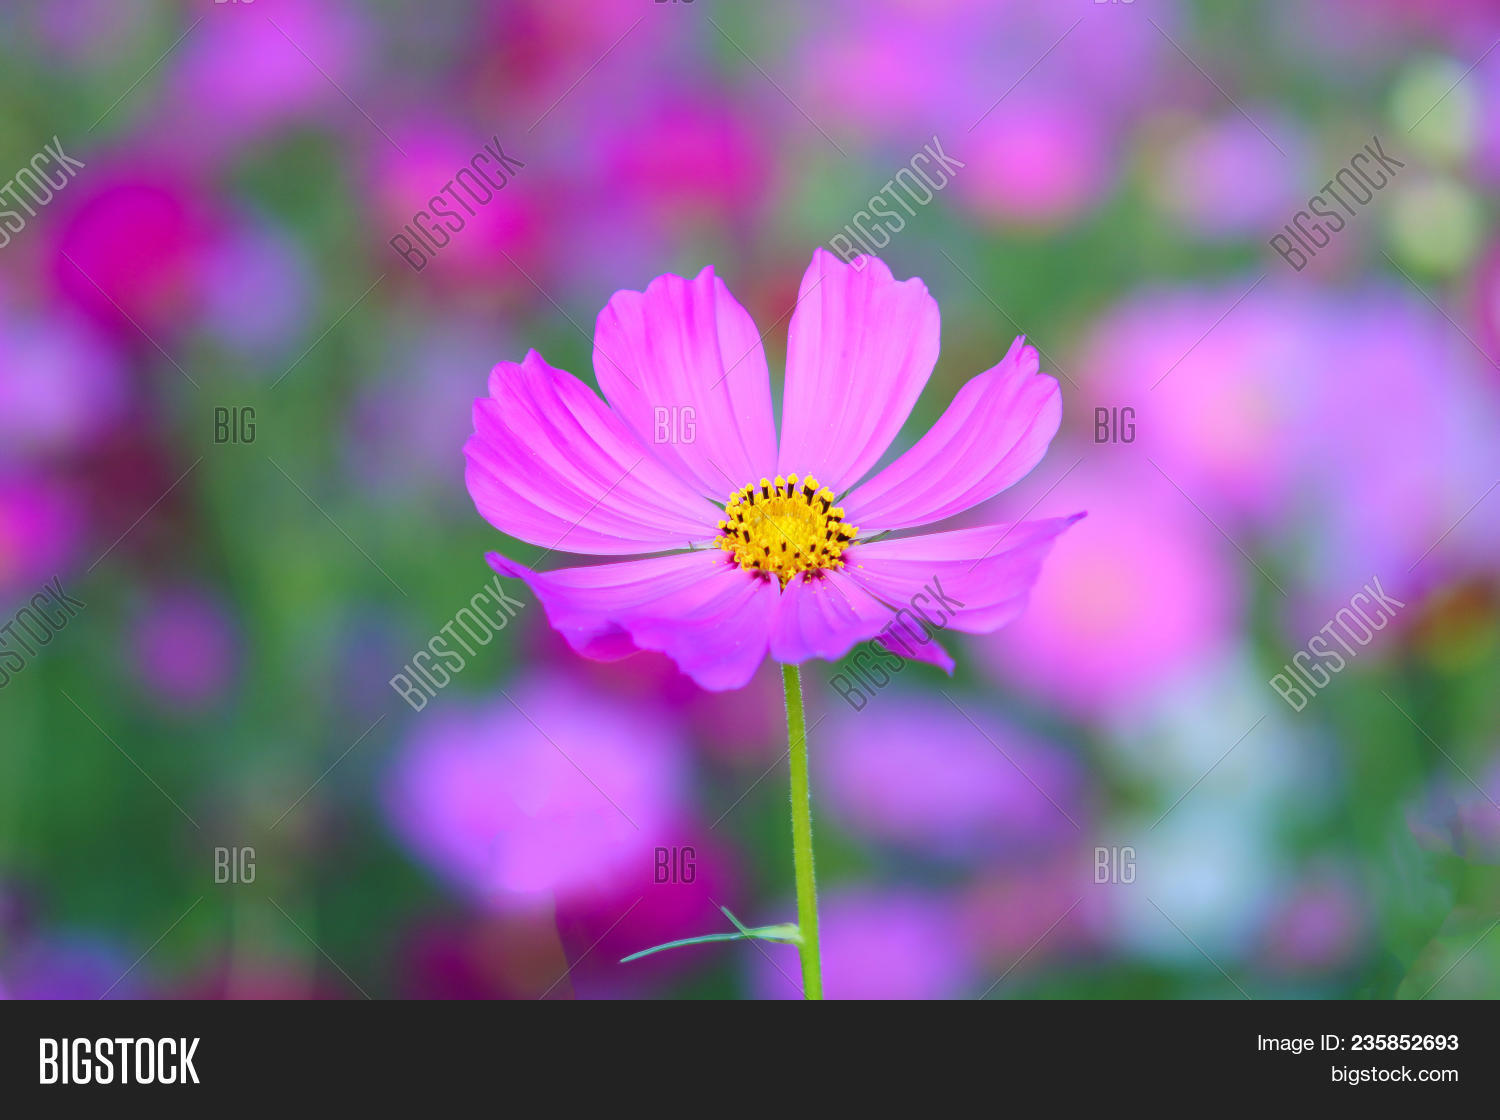 Purple flowers yellow image photo free trial bigstock purple flowers with yellow stamens flower concept mightylinksfo